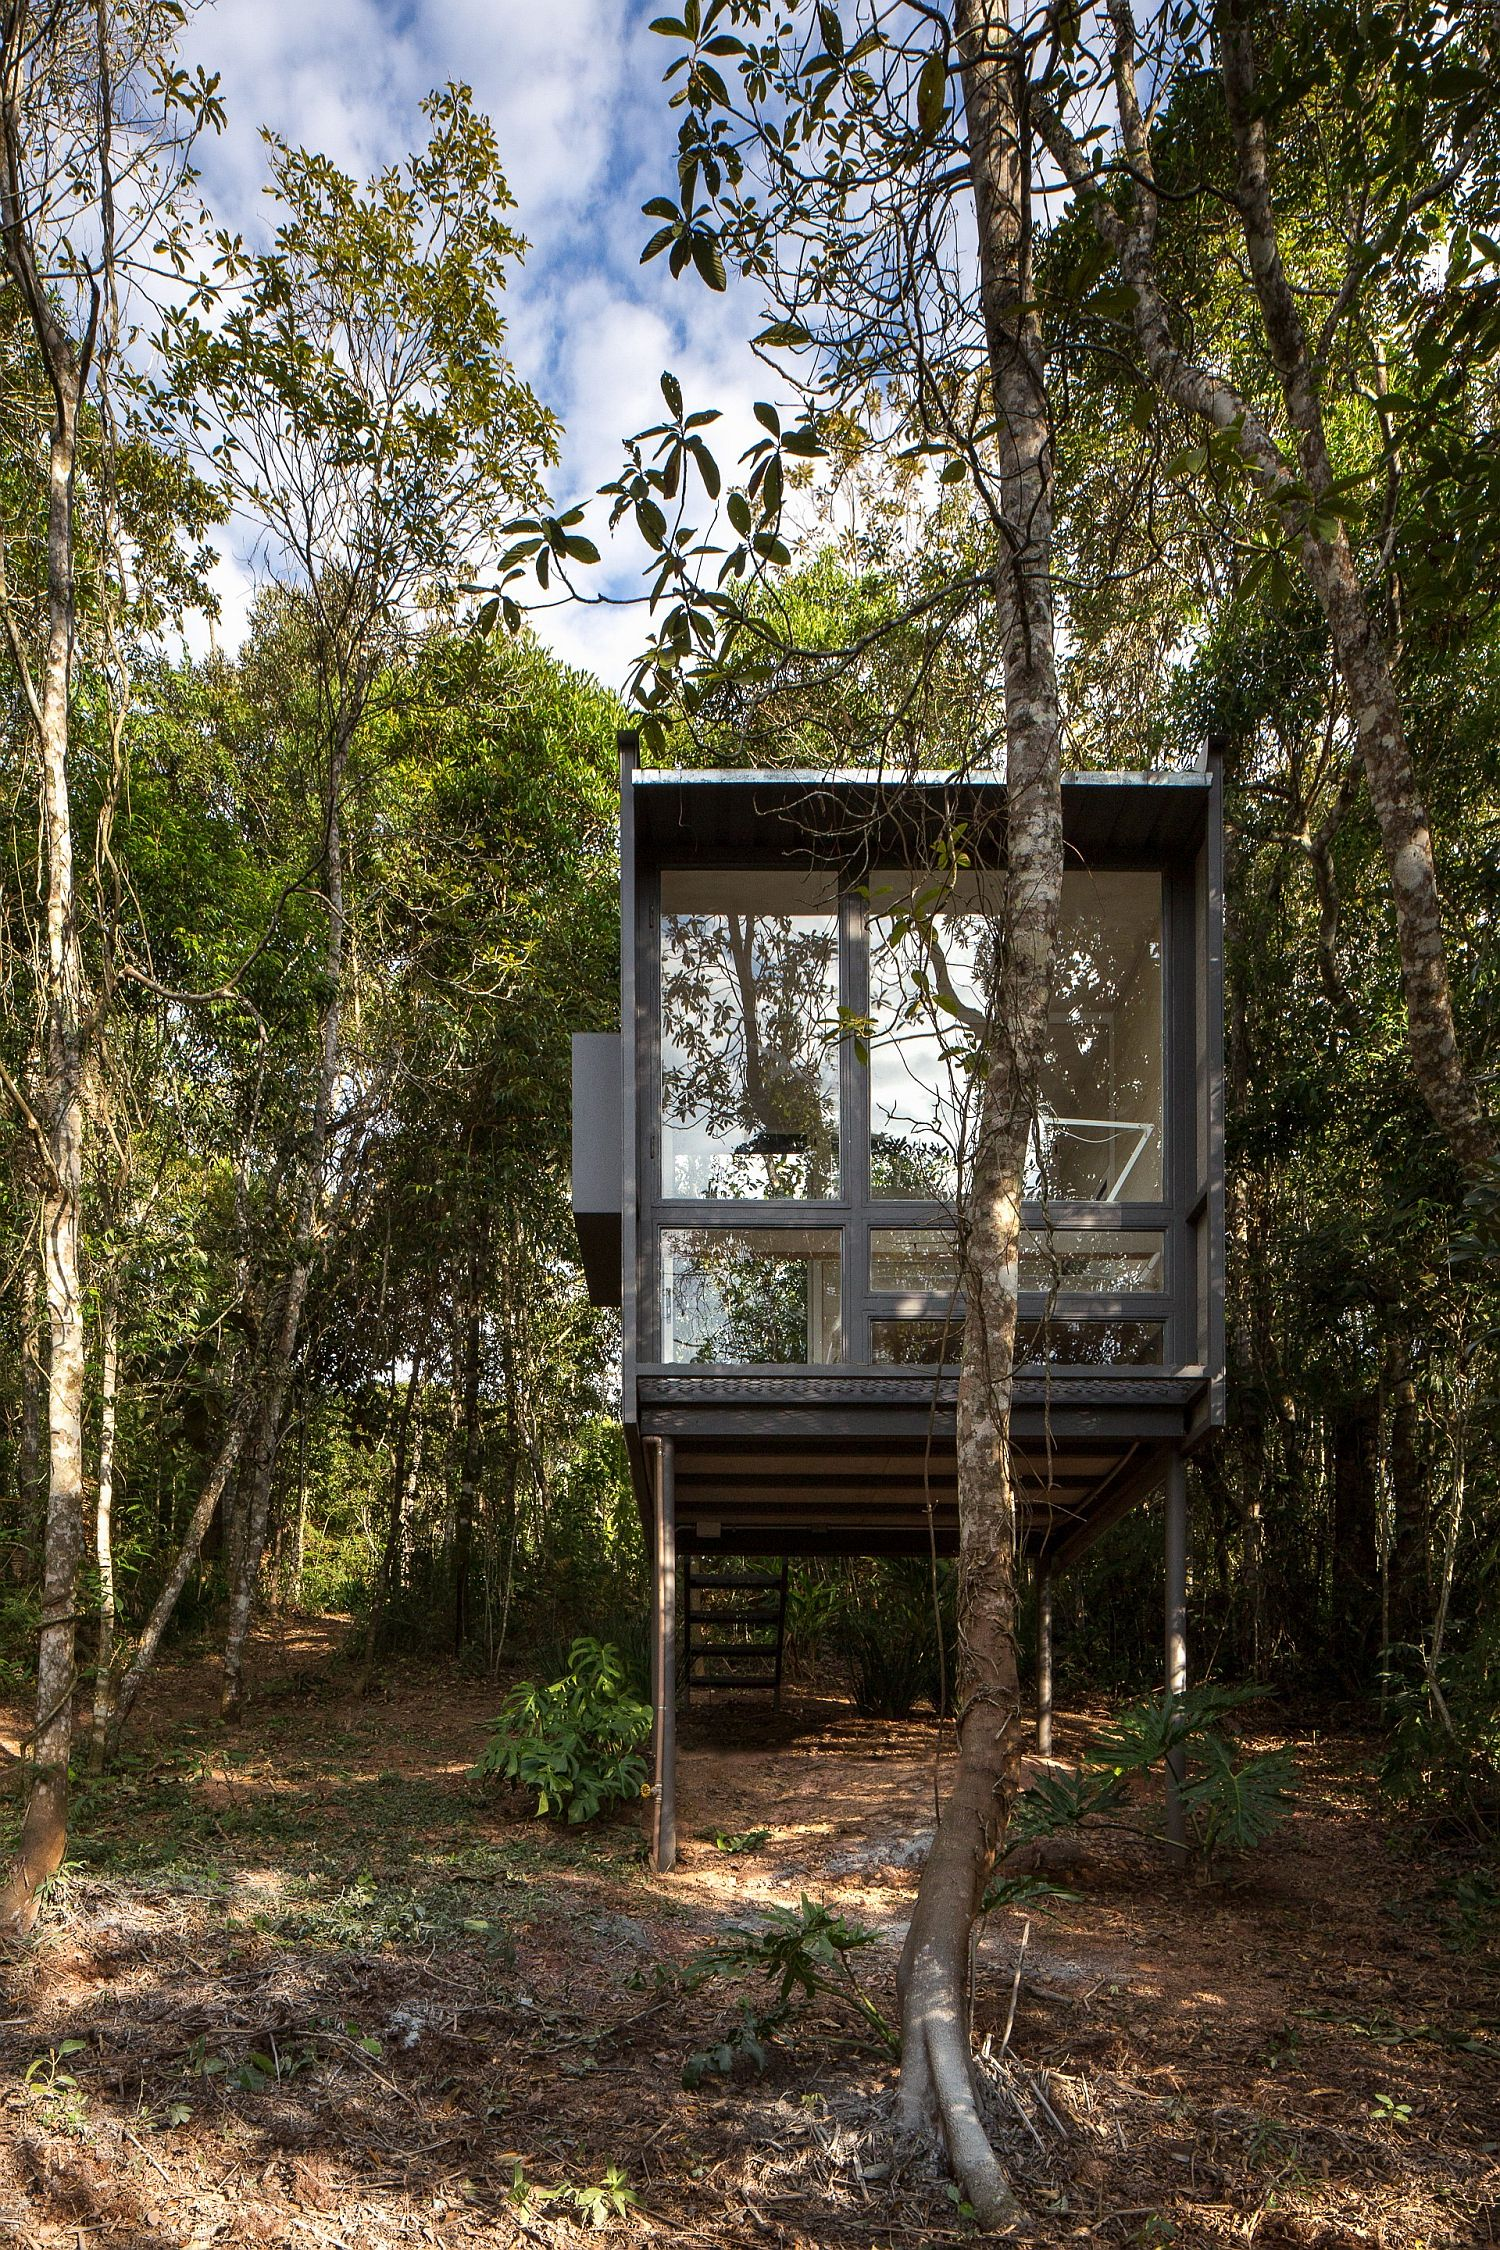 Living With Bare Minimum: 6 Sqm Cabin in the Forest Provides the Perfect Refuge